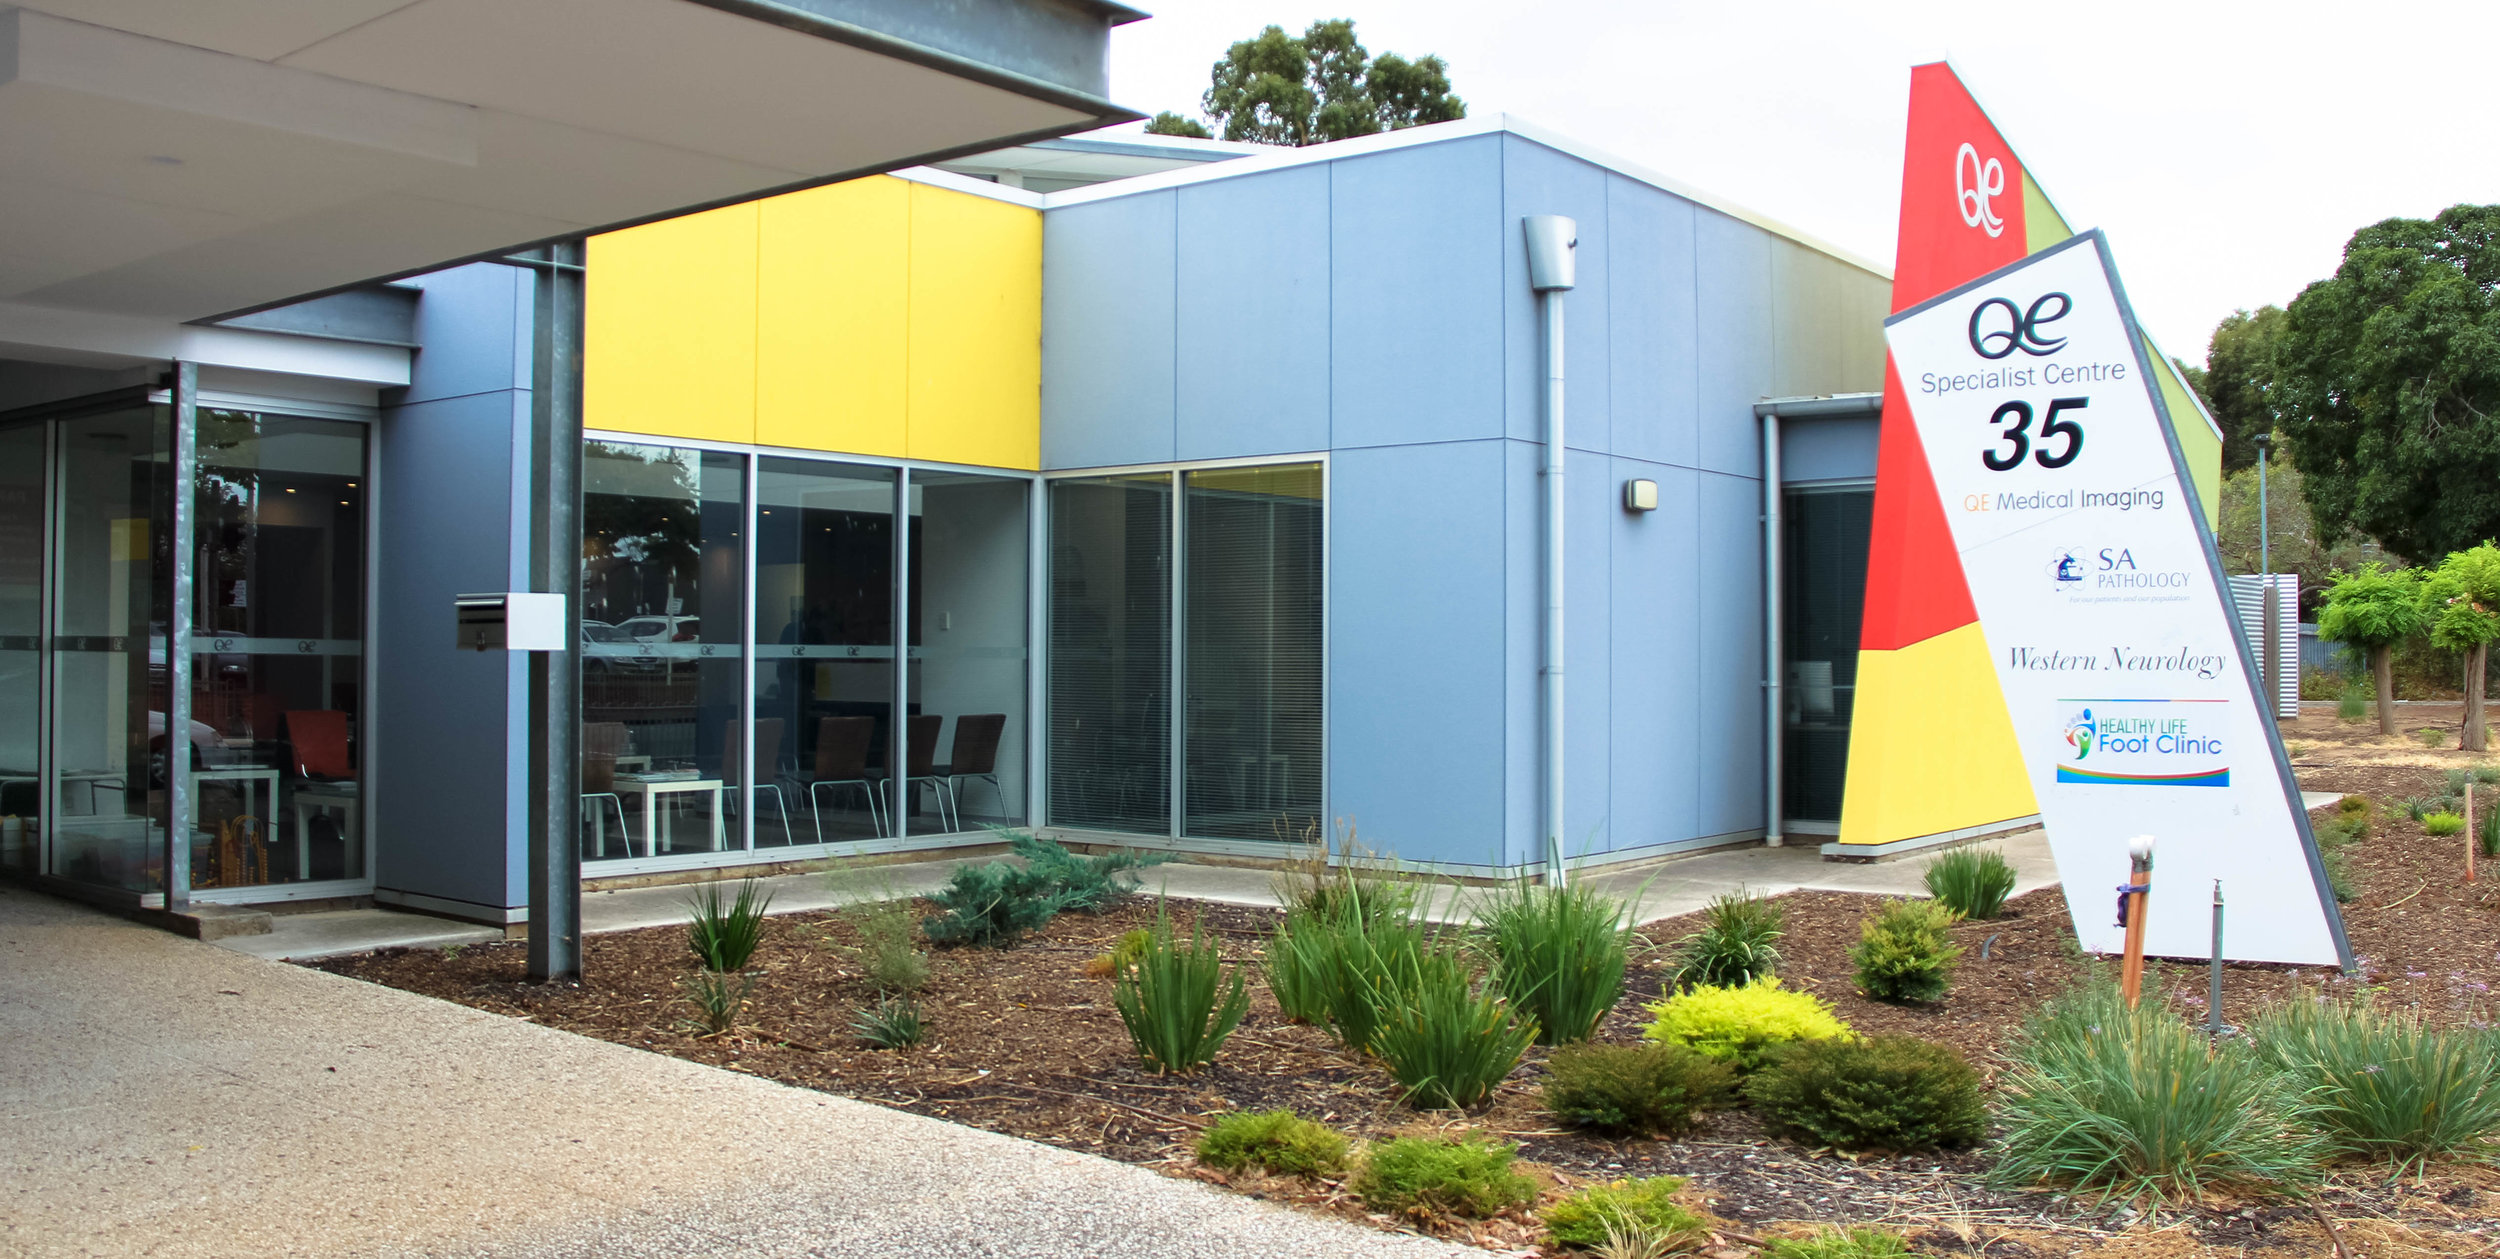 Western Neurology is located within the QE Specialist Centre on Woodville Road directly opposite the public carpark for The Queen Elizabeth Hospital.